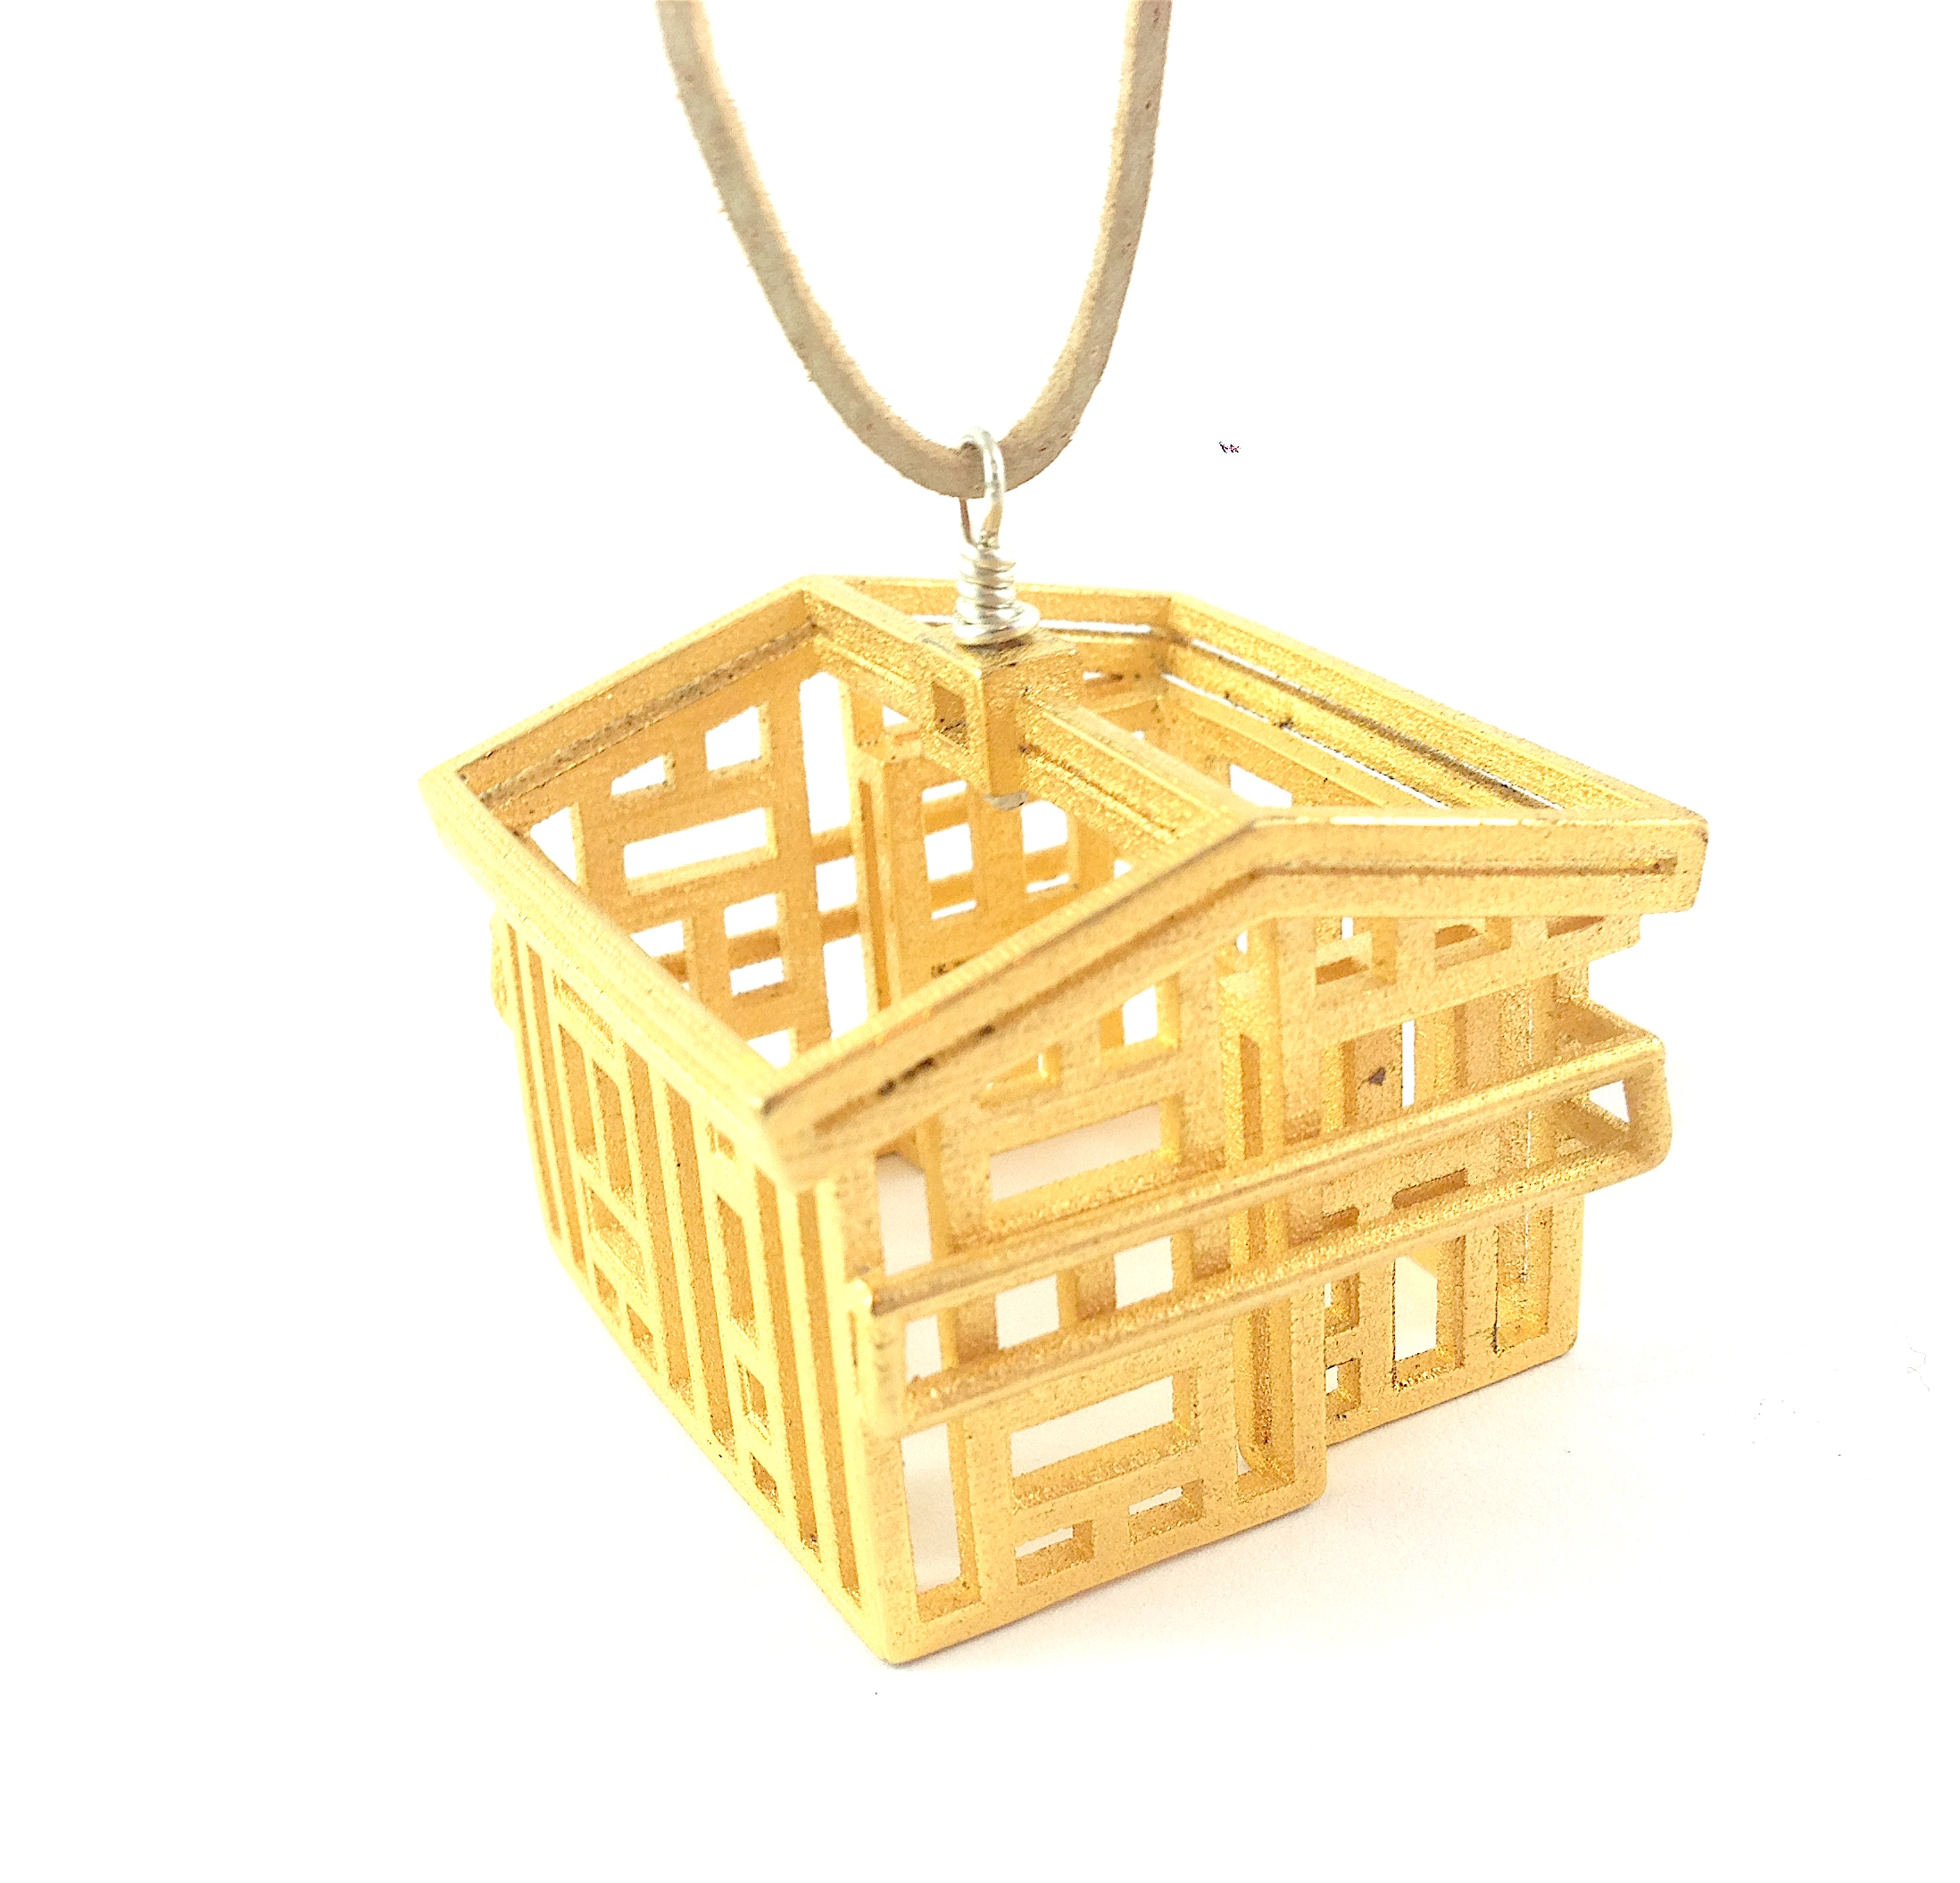 Vancouver Special House Necklace - wire frame version in gold steel.